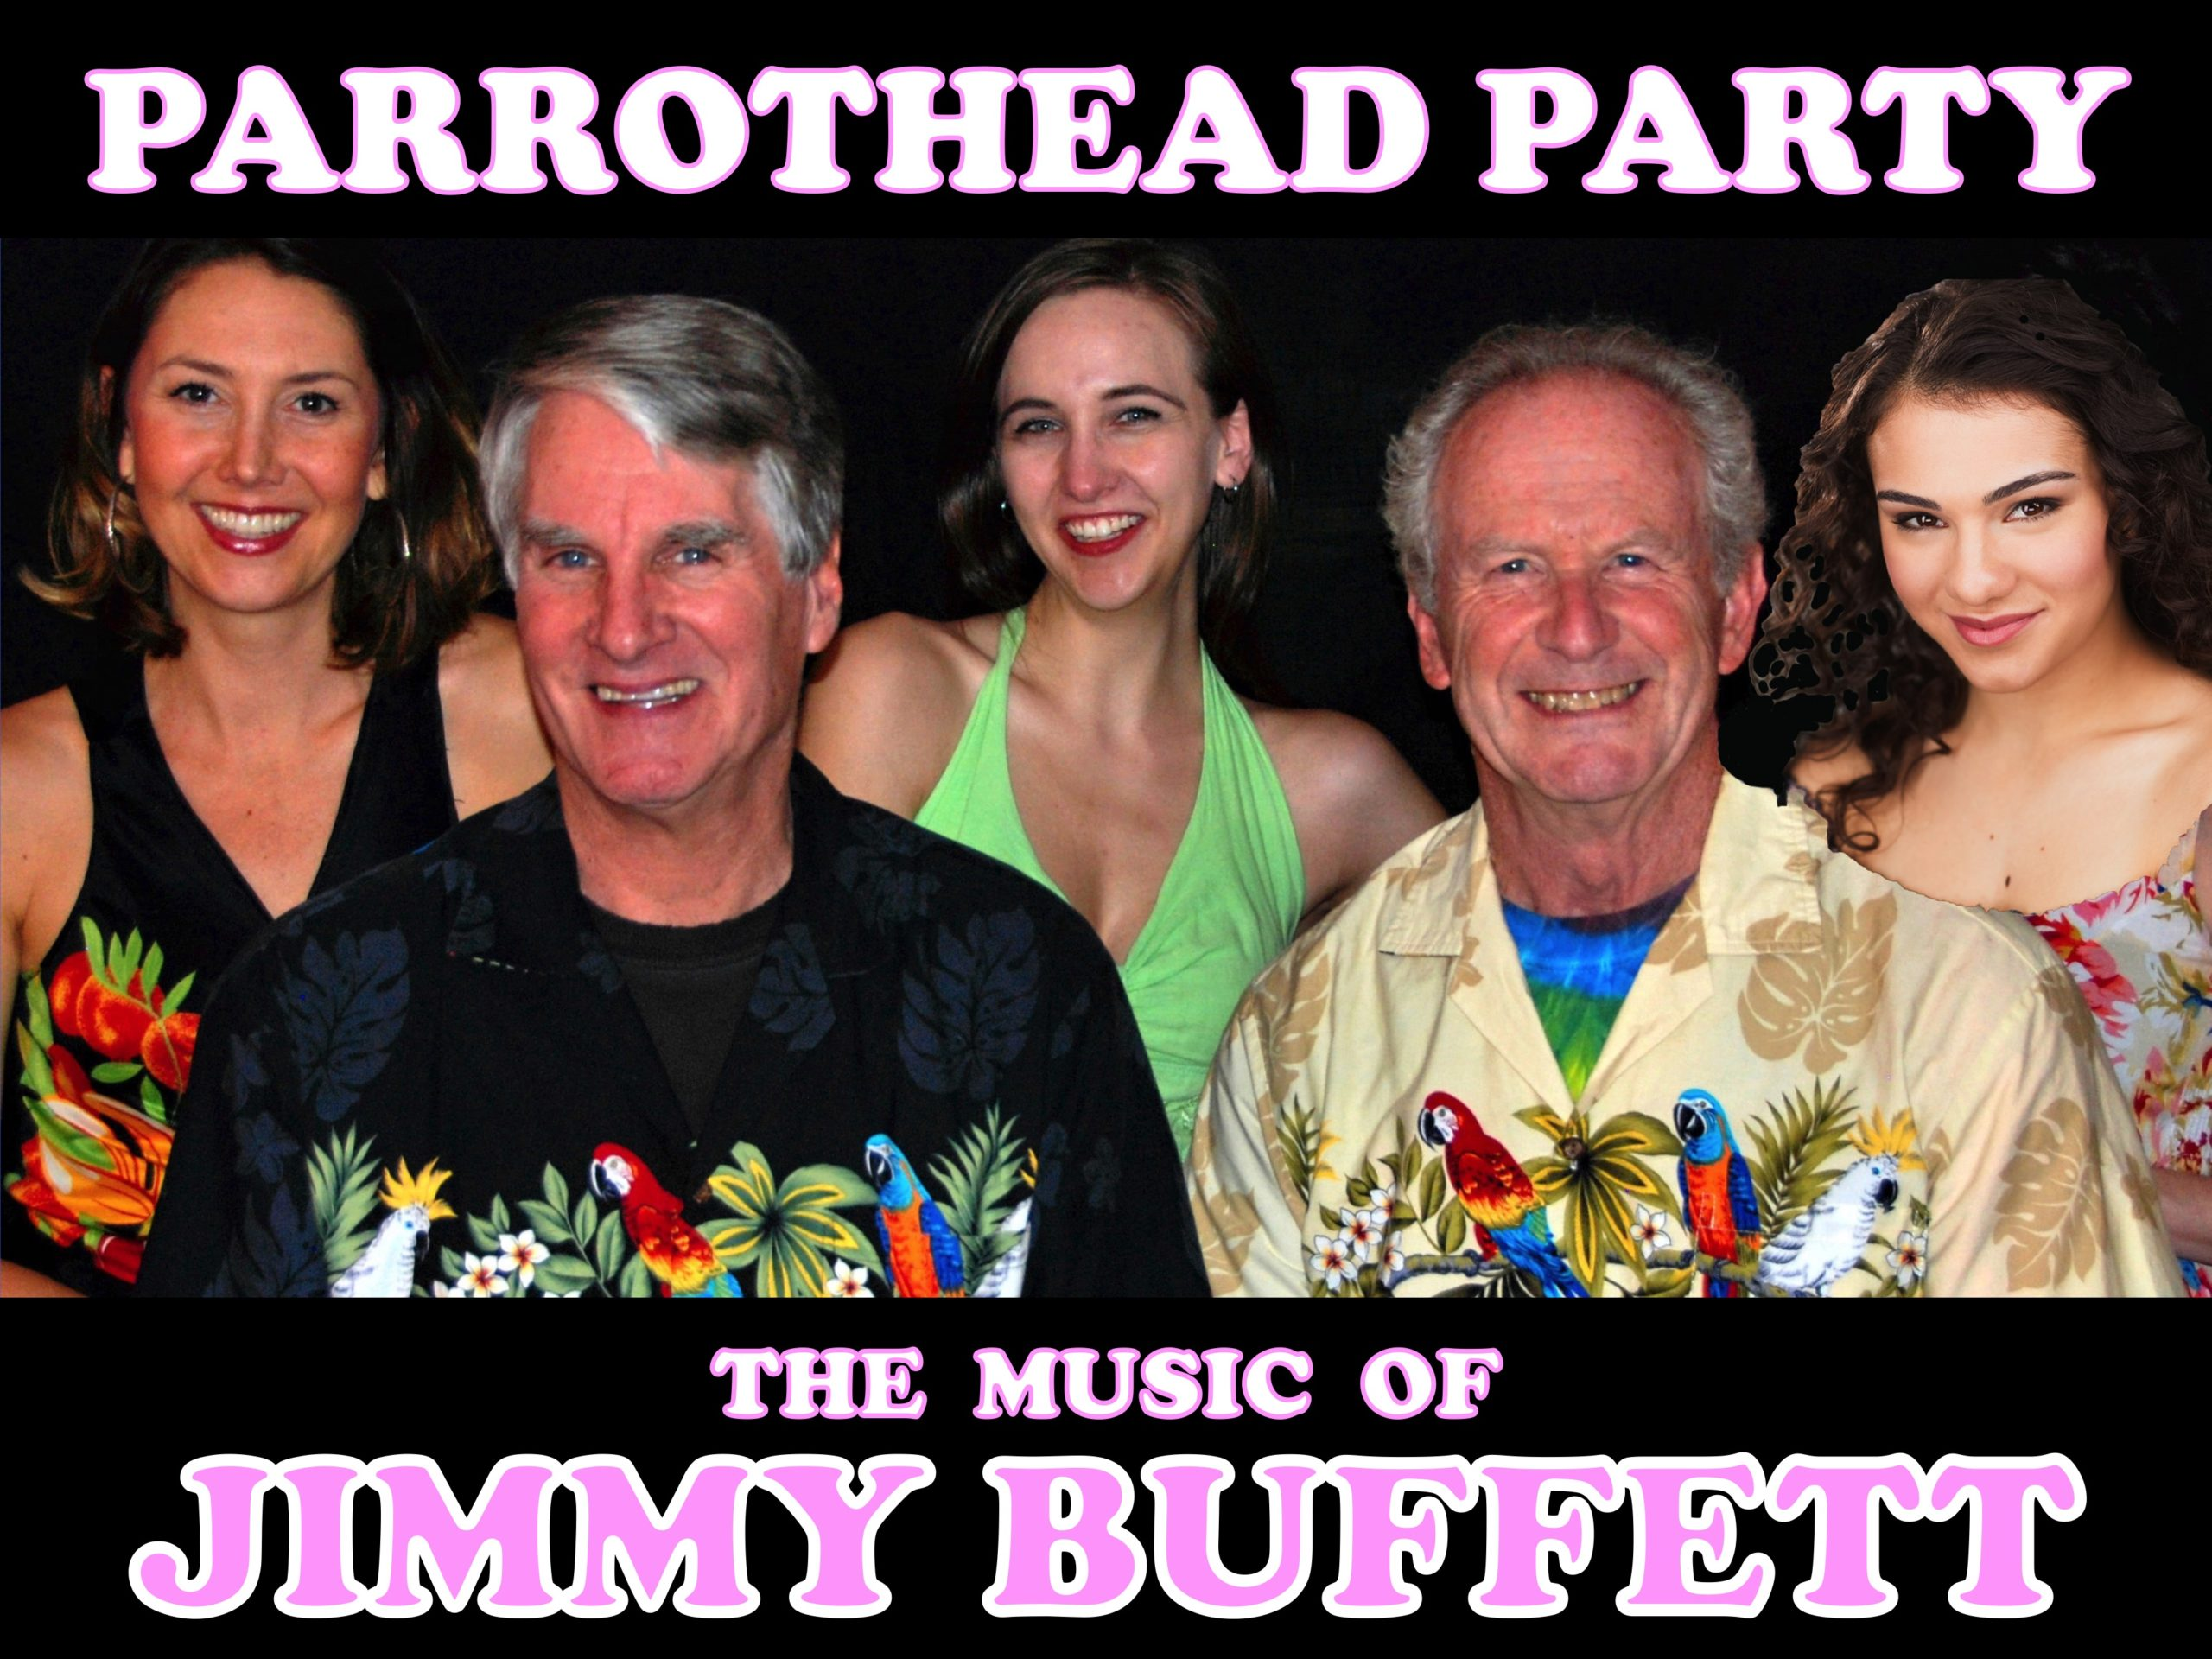 CANCELLED: Music Jimmy Buffett